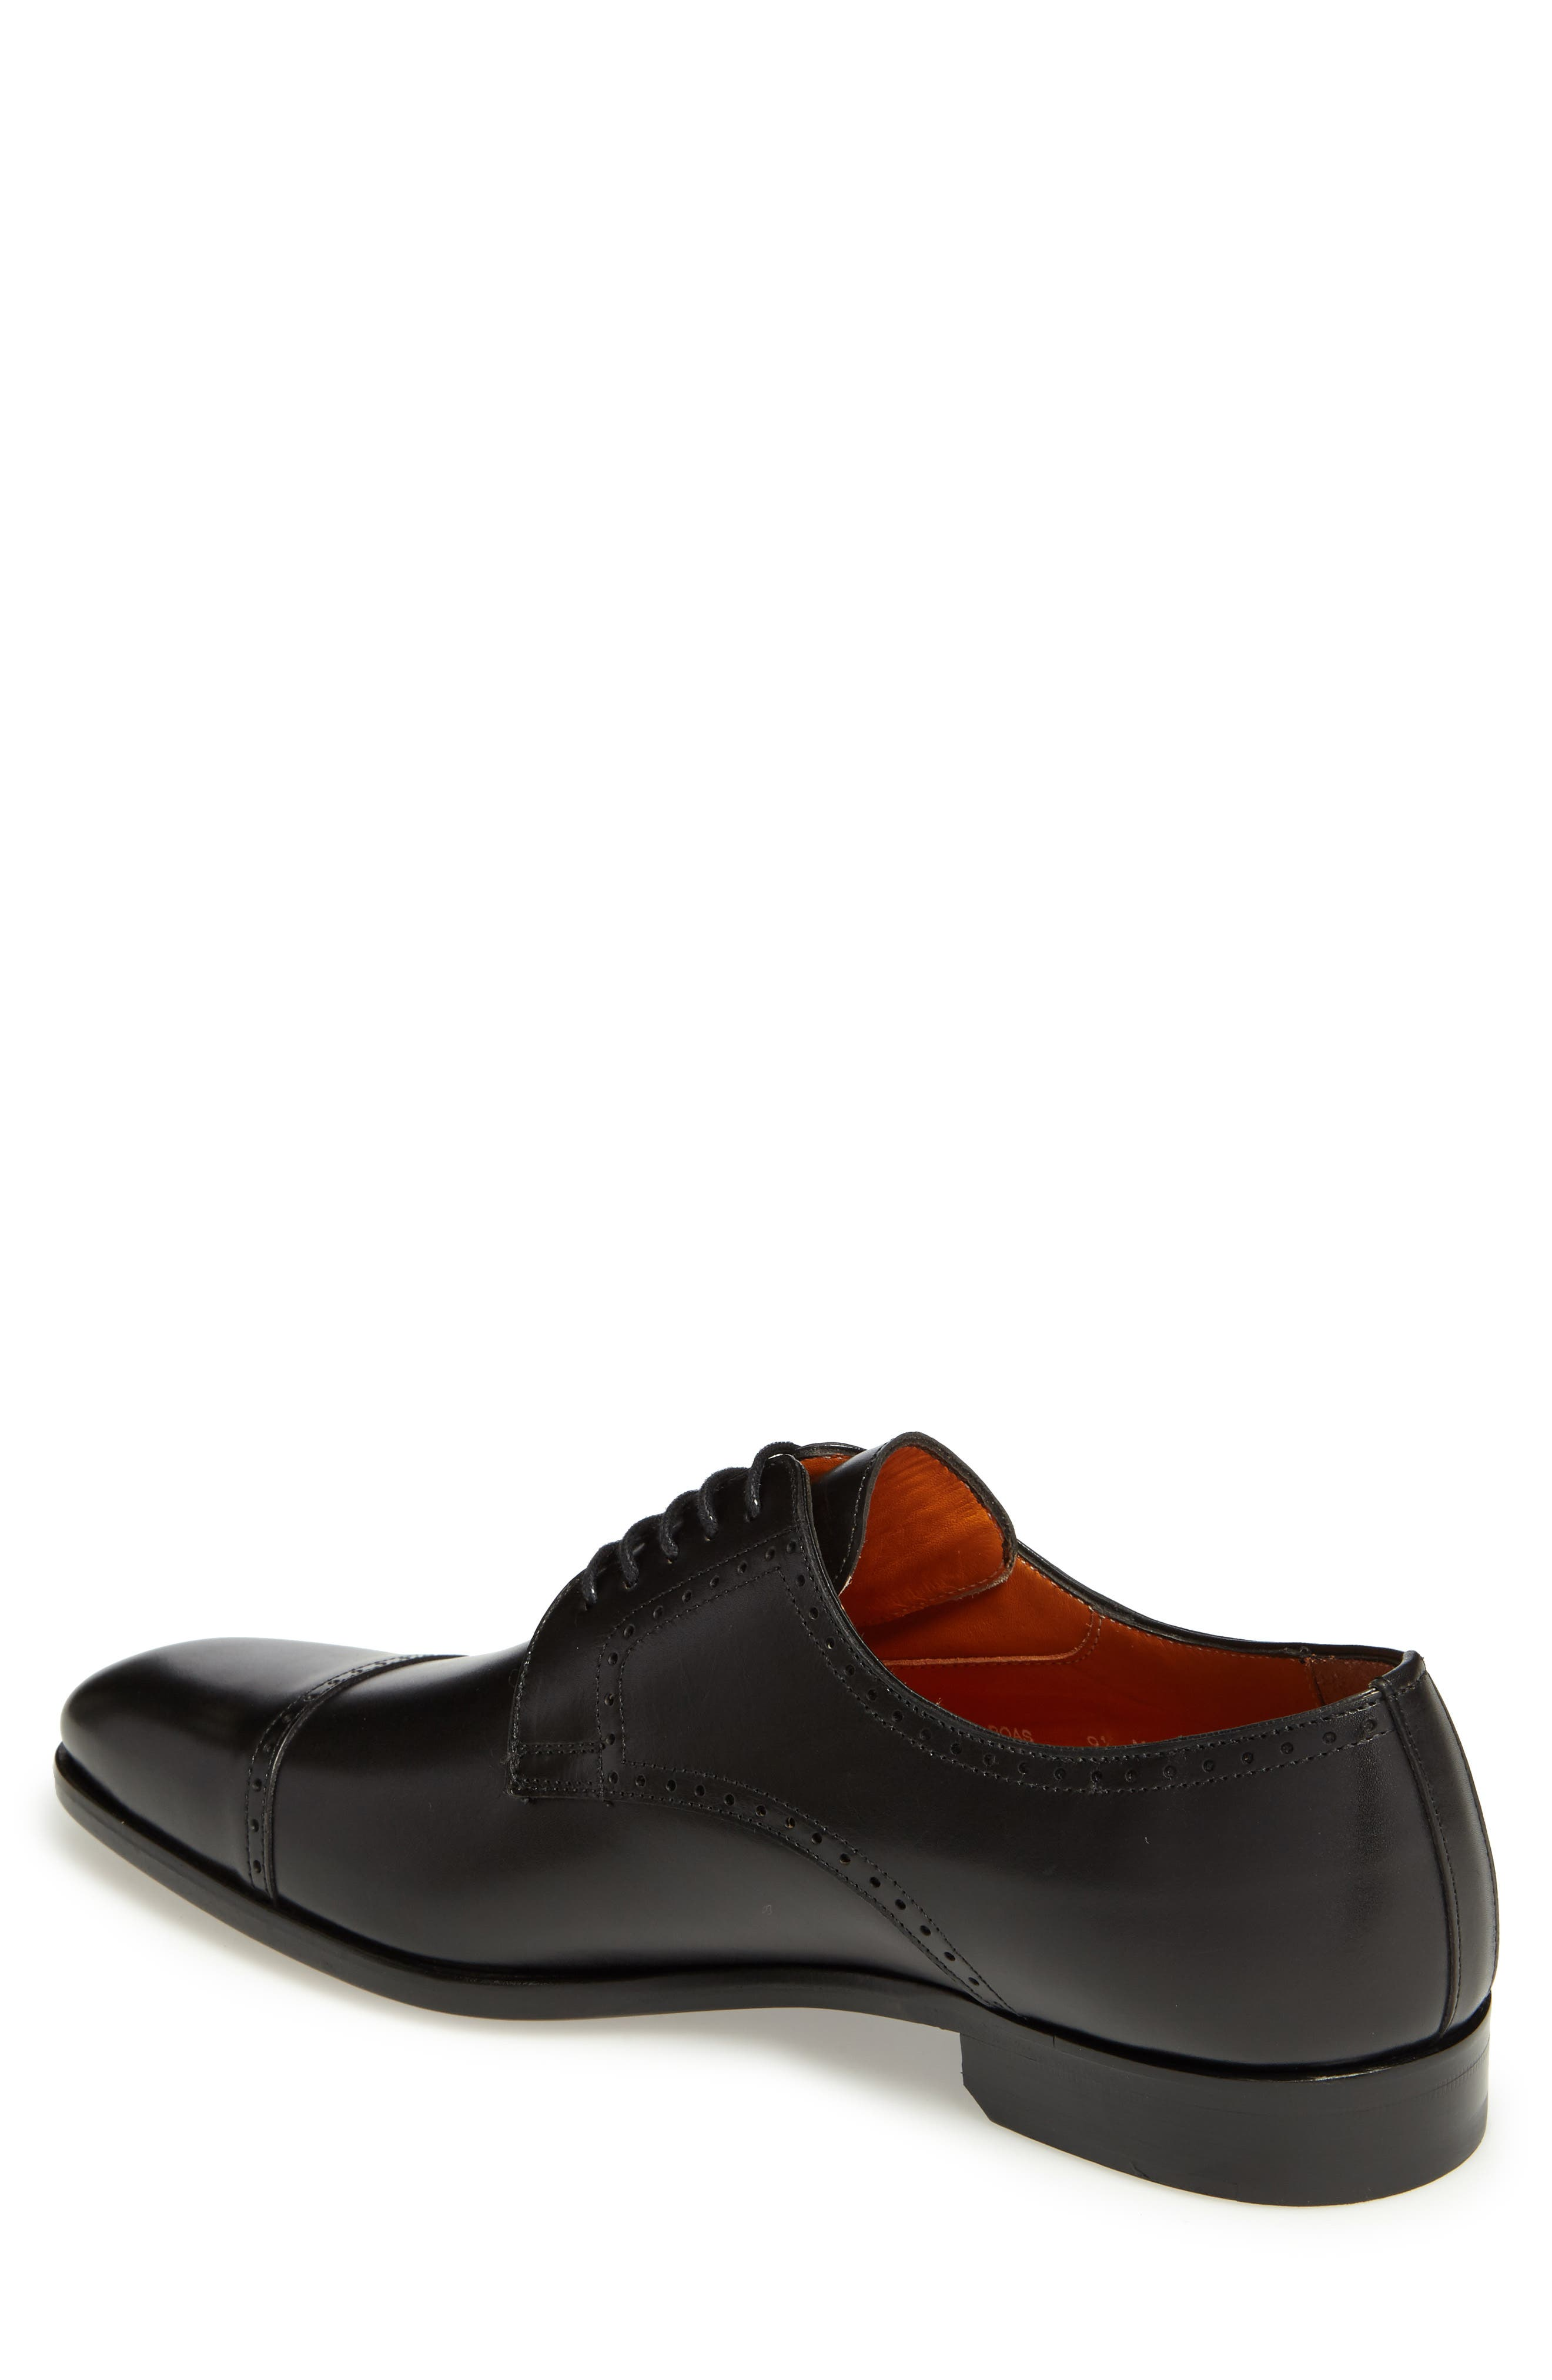 Boas Cap Toe Oxford,                             Alternate thumbnail 2, color,                             BLACK LEATHER